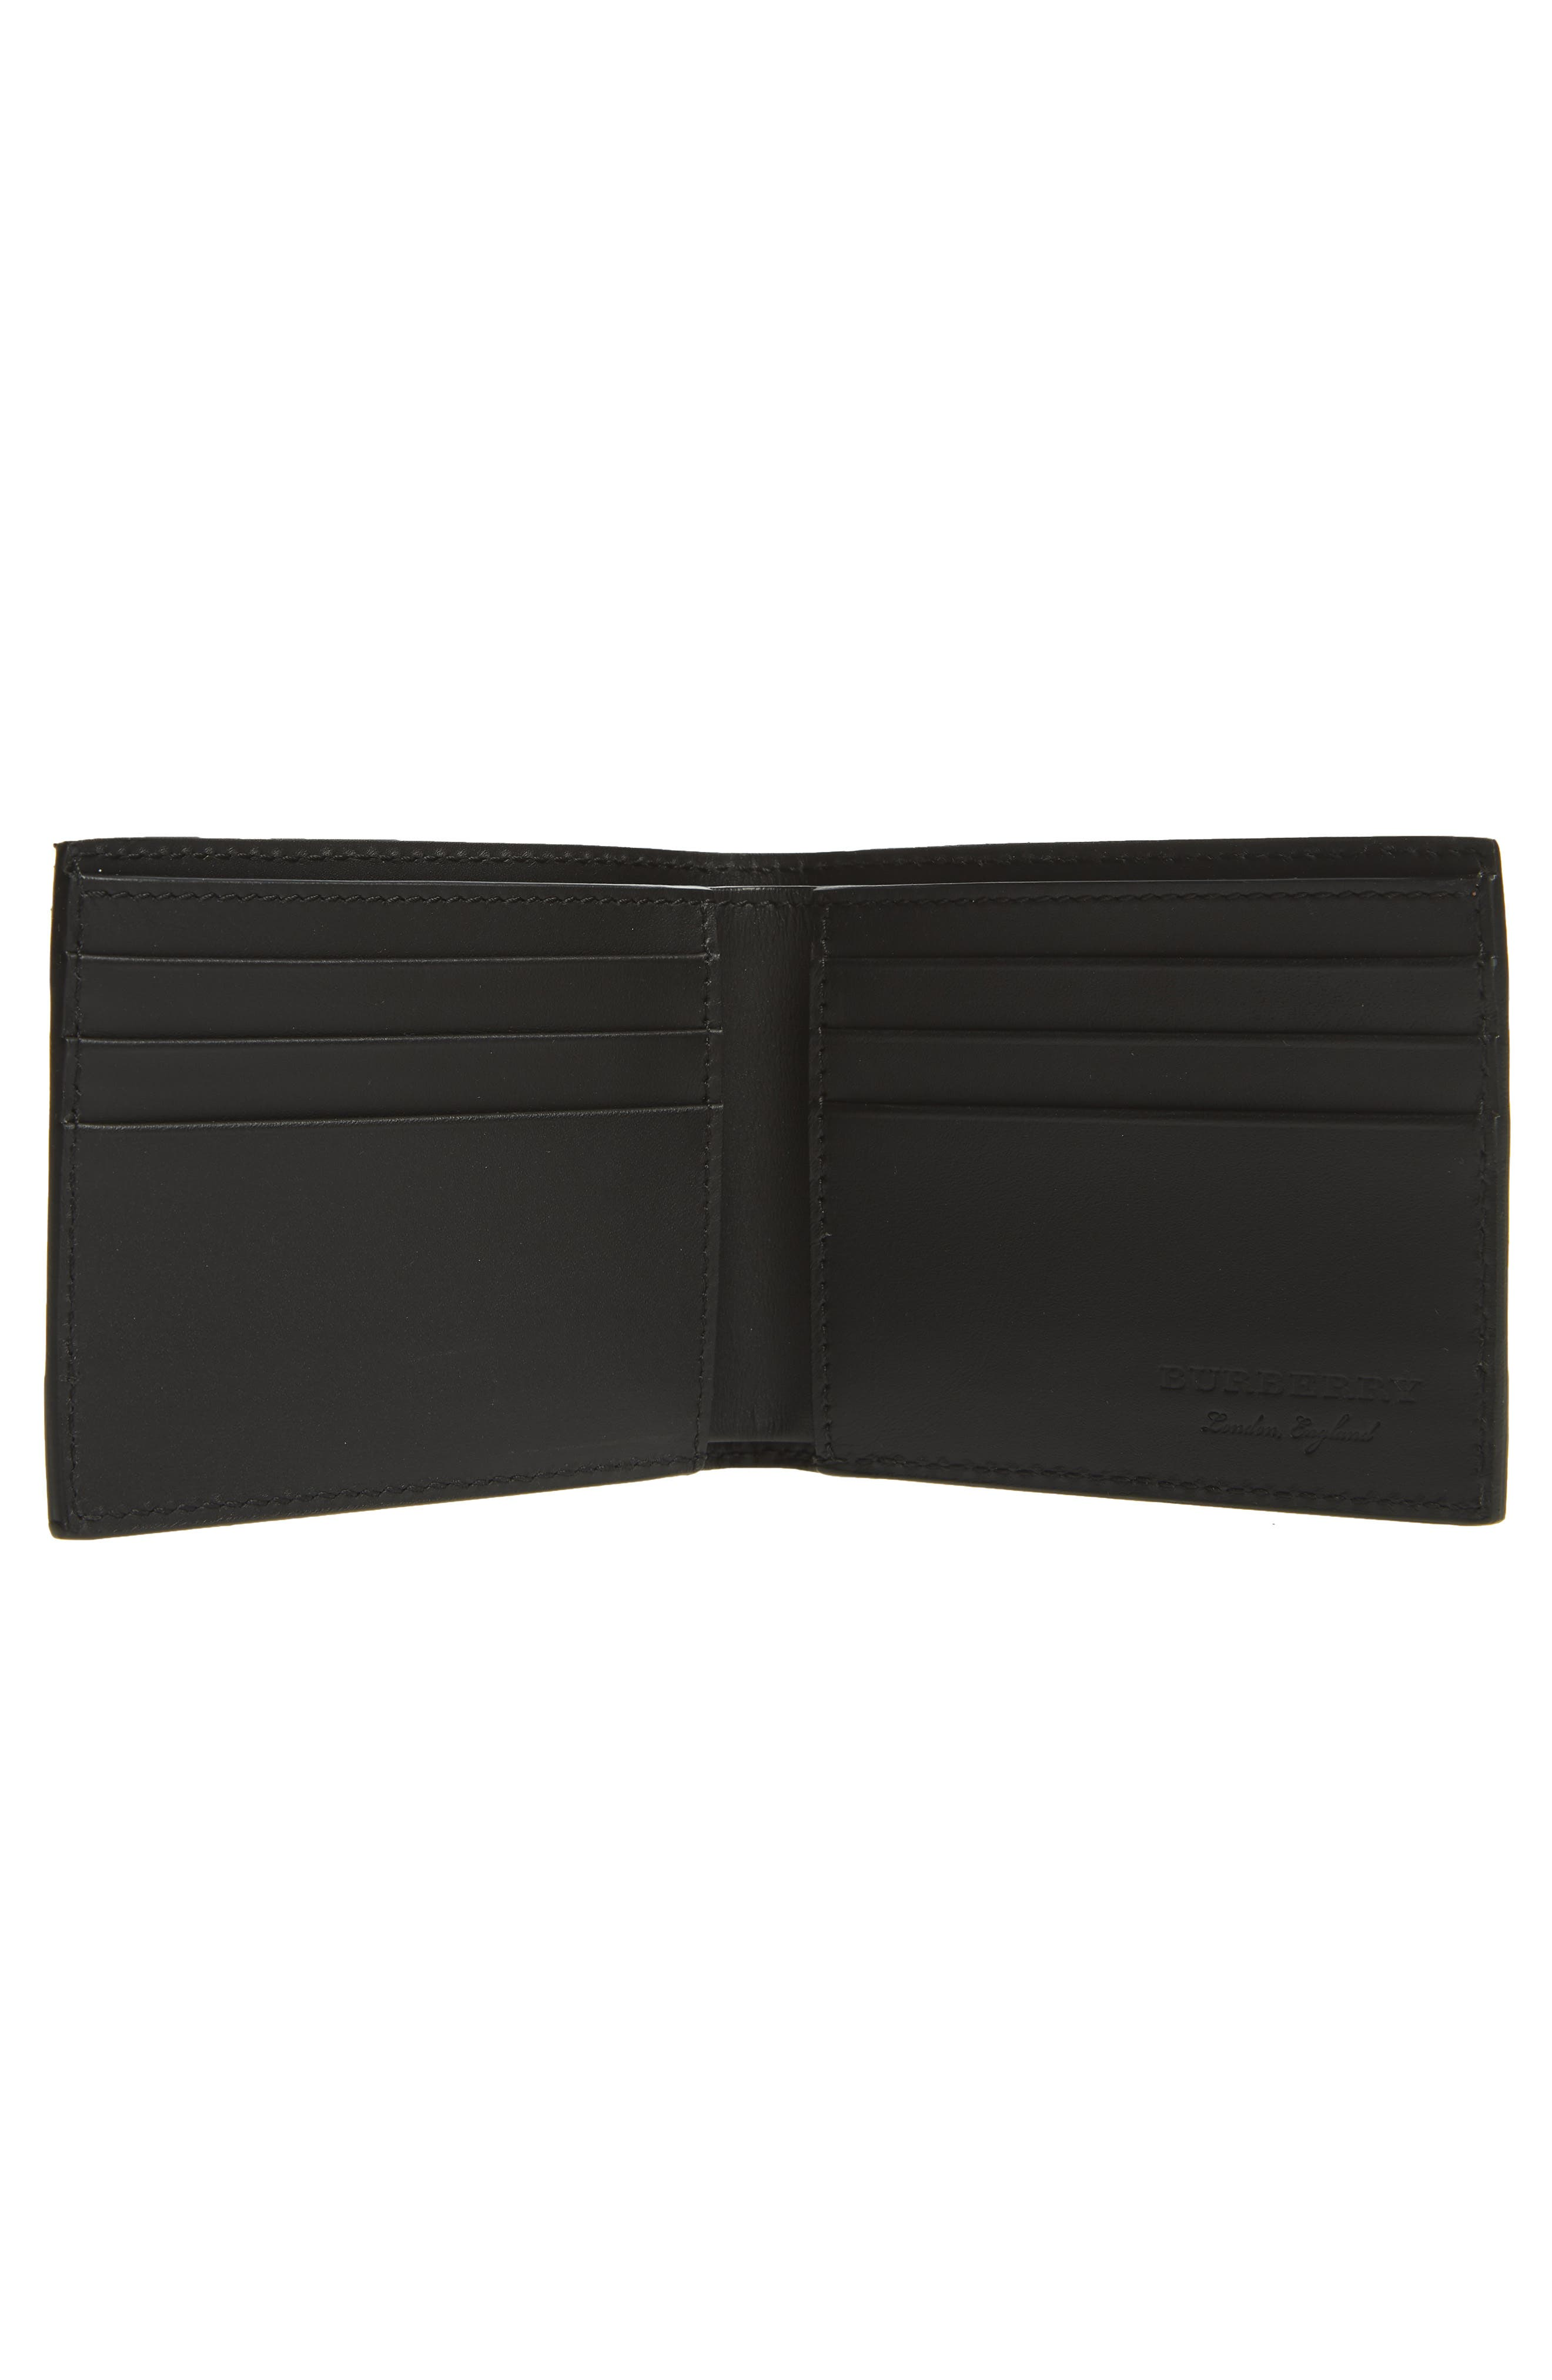 Haymarket Bifold Wallet,                             Alternate thumbnail 2, color,                             001